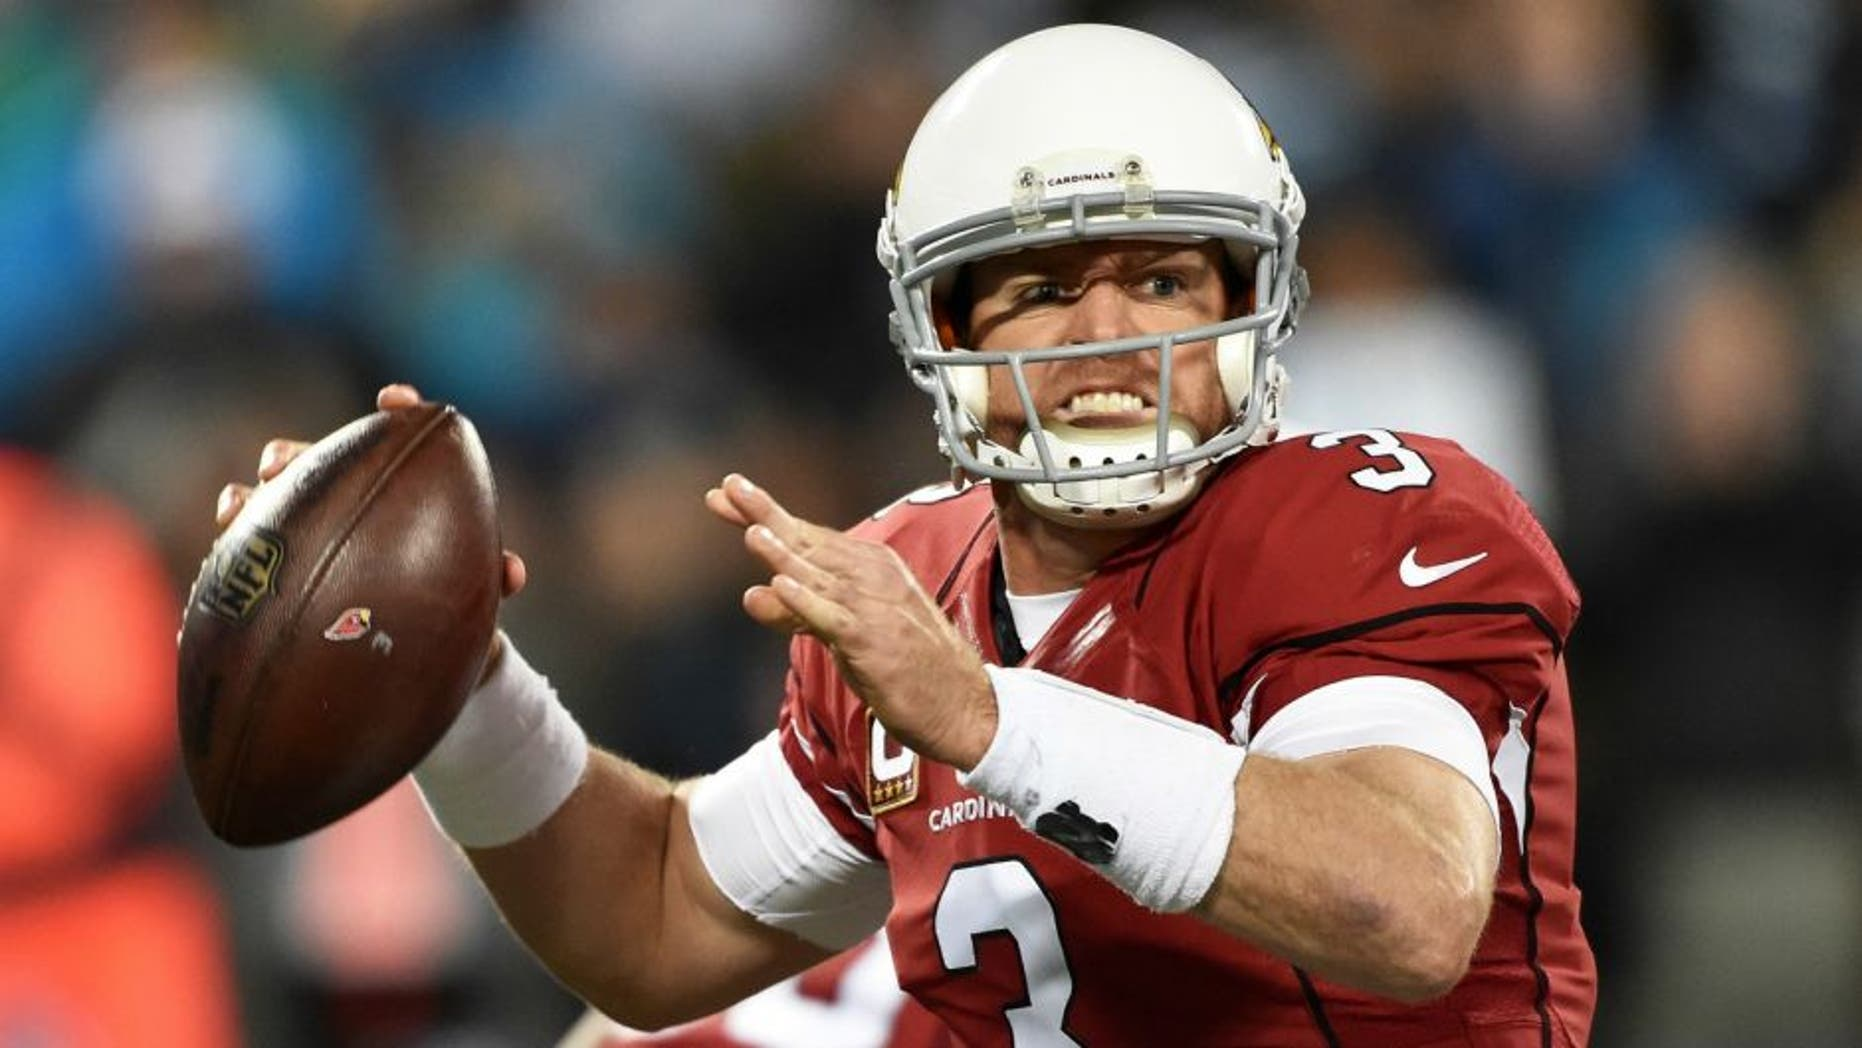 CHARLOTTE, NC - JANUARY 24: Quarterback Carson Palmer #3 of the Arizona Cardinals looks for a receiver during the NFC Championship Game against the Carolina Panthers at Bank of America Stadium on January 24, 2016 in Charlotte, North Carolina. (Photo by Ronald C. Modra/Sports Imagery/Getty Images) *** Local Caption *** Carson Palmer,CHARLOTTE, NC - JANUARY 24: Quarterback Carson Palmer #3 of the Arizona Cardinals looks for a receiver during the NFC Championship Game against the Carolina Panthers at Bank of America Stadium on January 24, 2016 in Charlotte, North Carolina. (Photo by Ronald C. Modra/Sports Imagery/Getty Images)